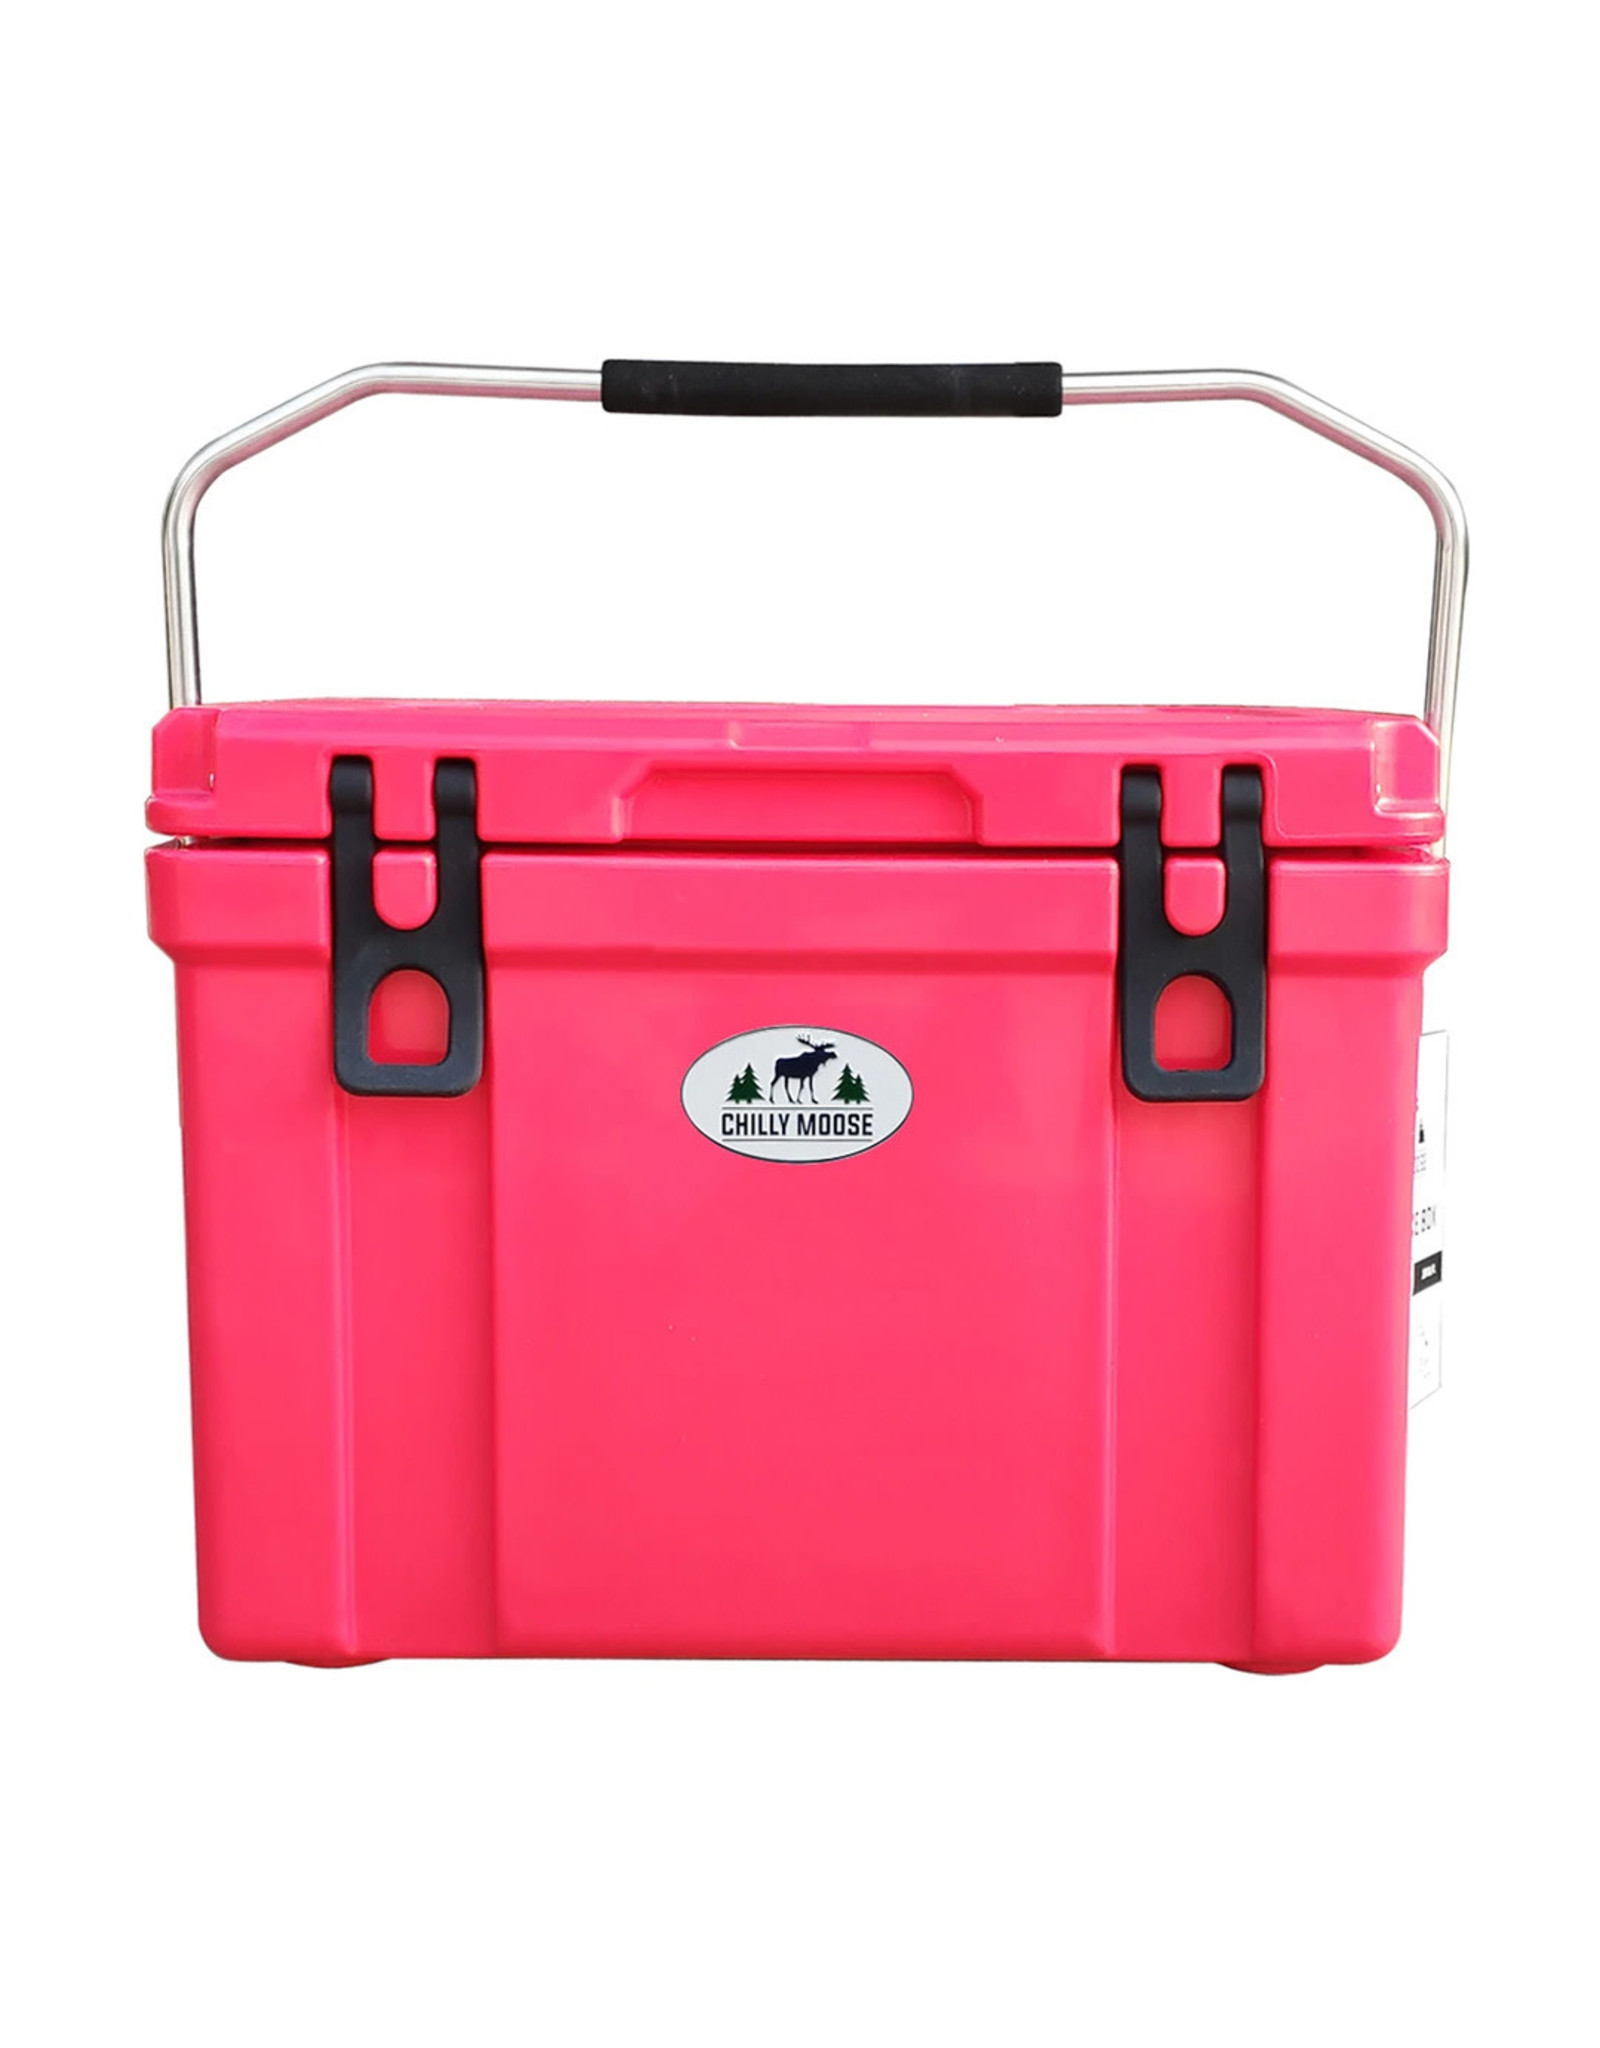 Chilly Moose 25 Ltr - Chilly Ice Box